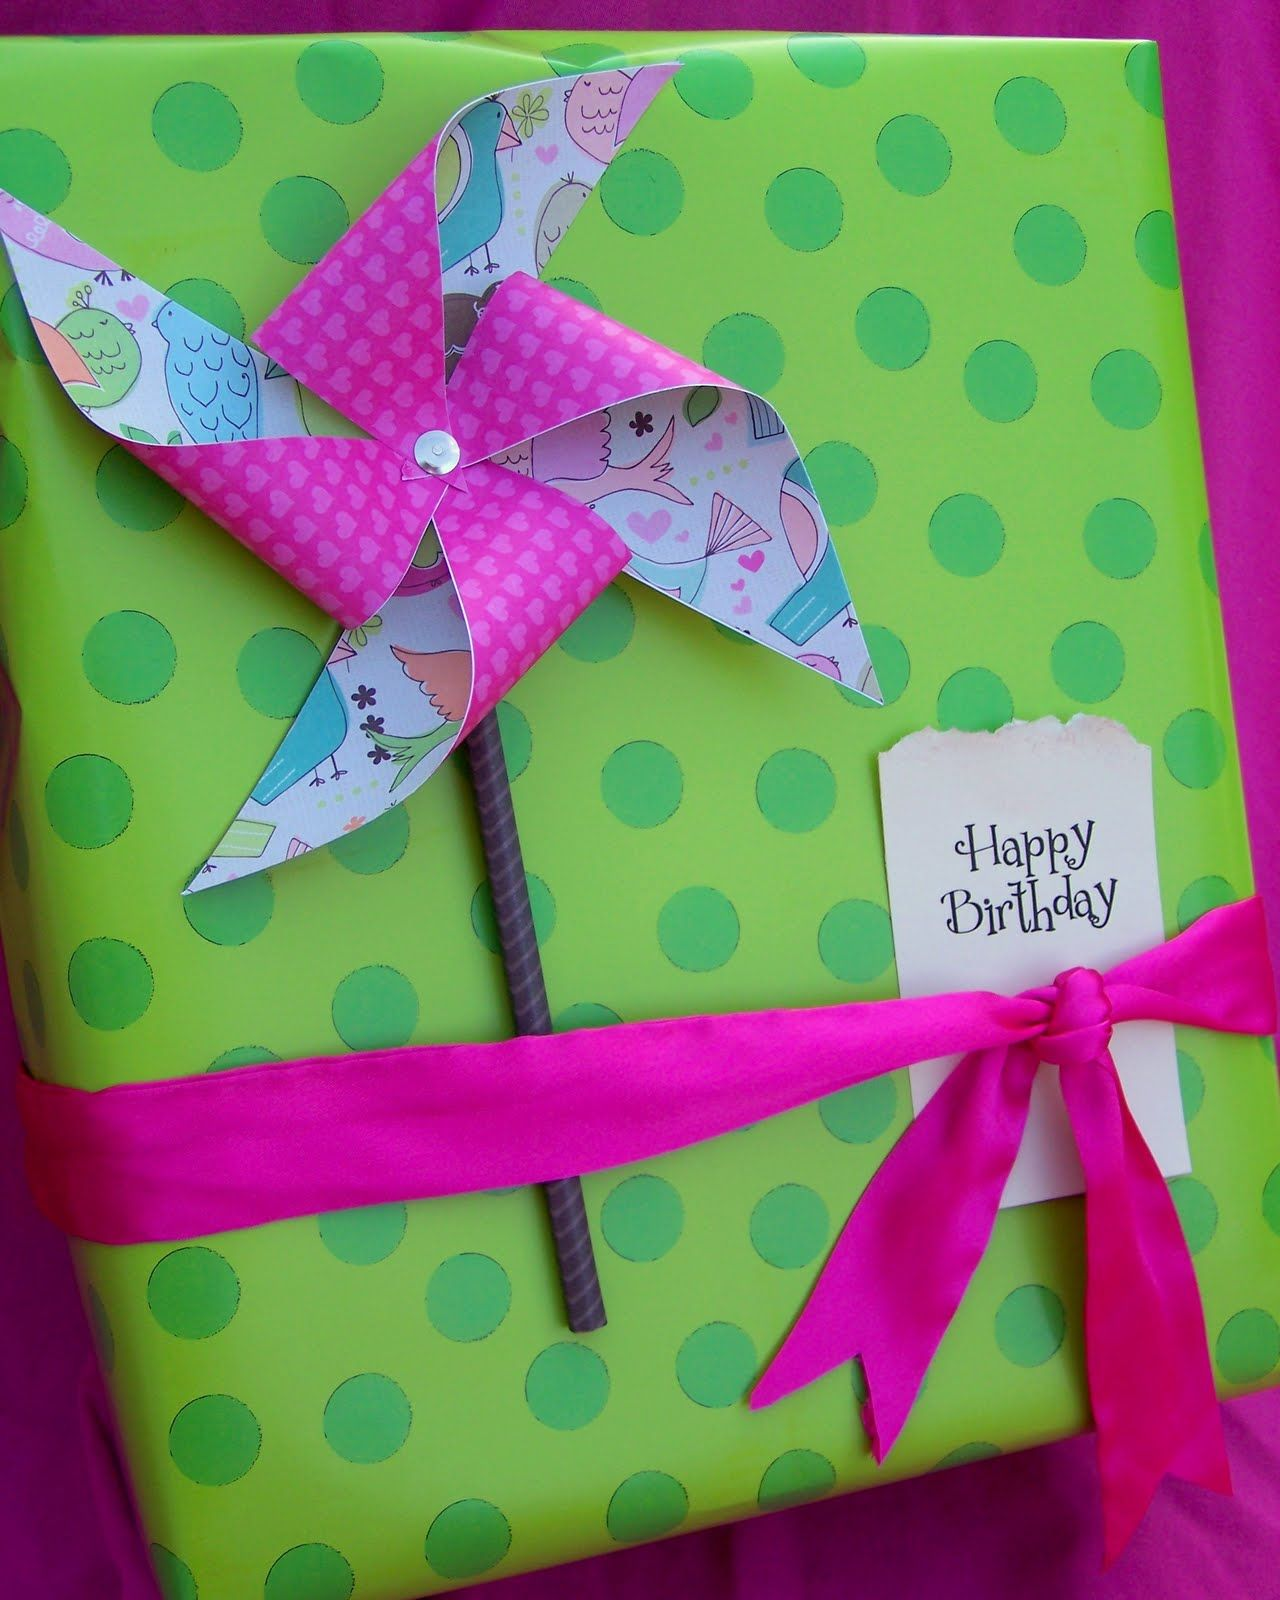 This whole blog has nothing but creative ways to decorate packages